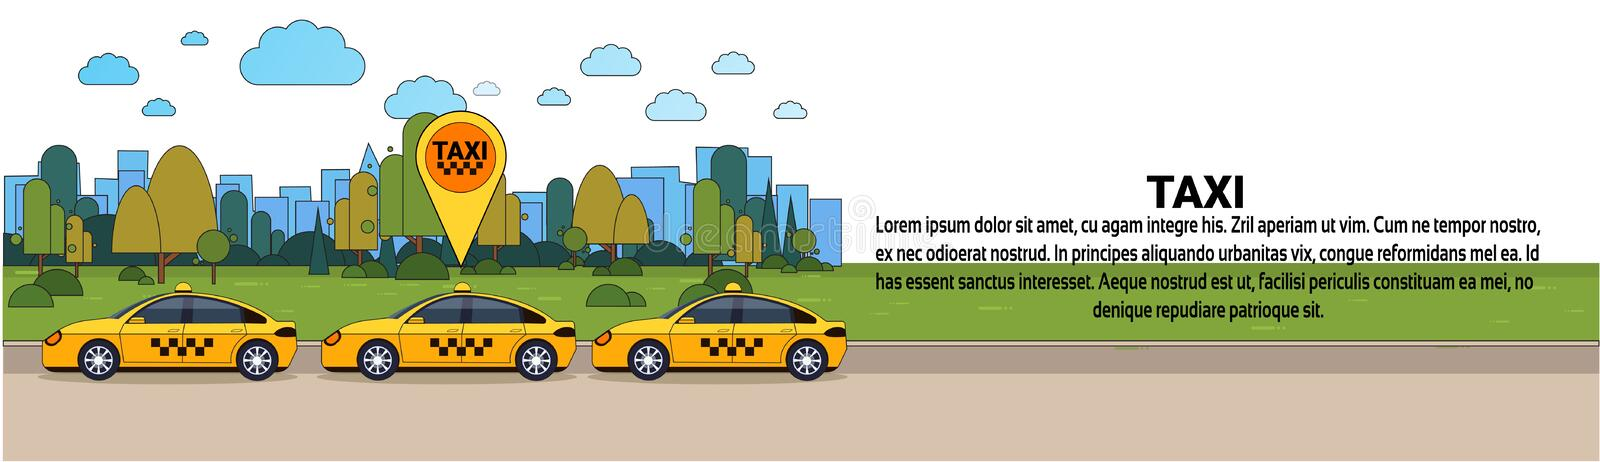 Modern Taxi Car With Gps Location Sign Online Cab Order Service Concept Horizontal Banner. Flat Vector Illustration vector illustration